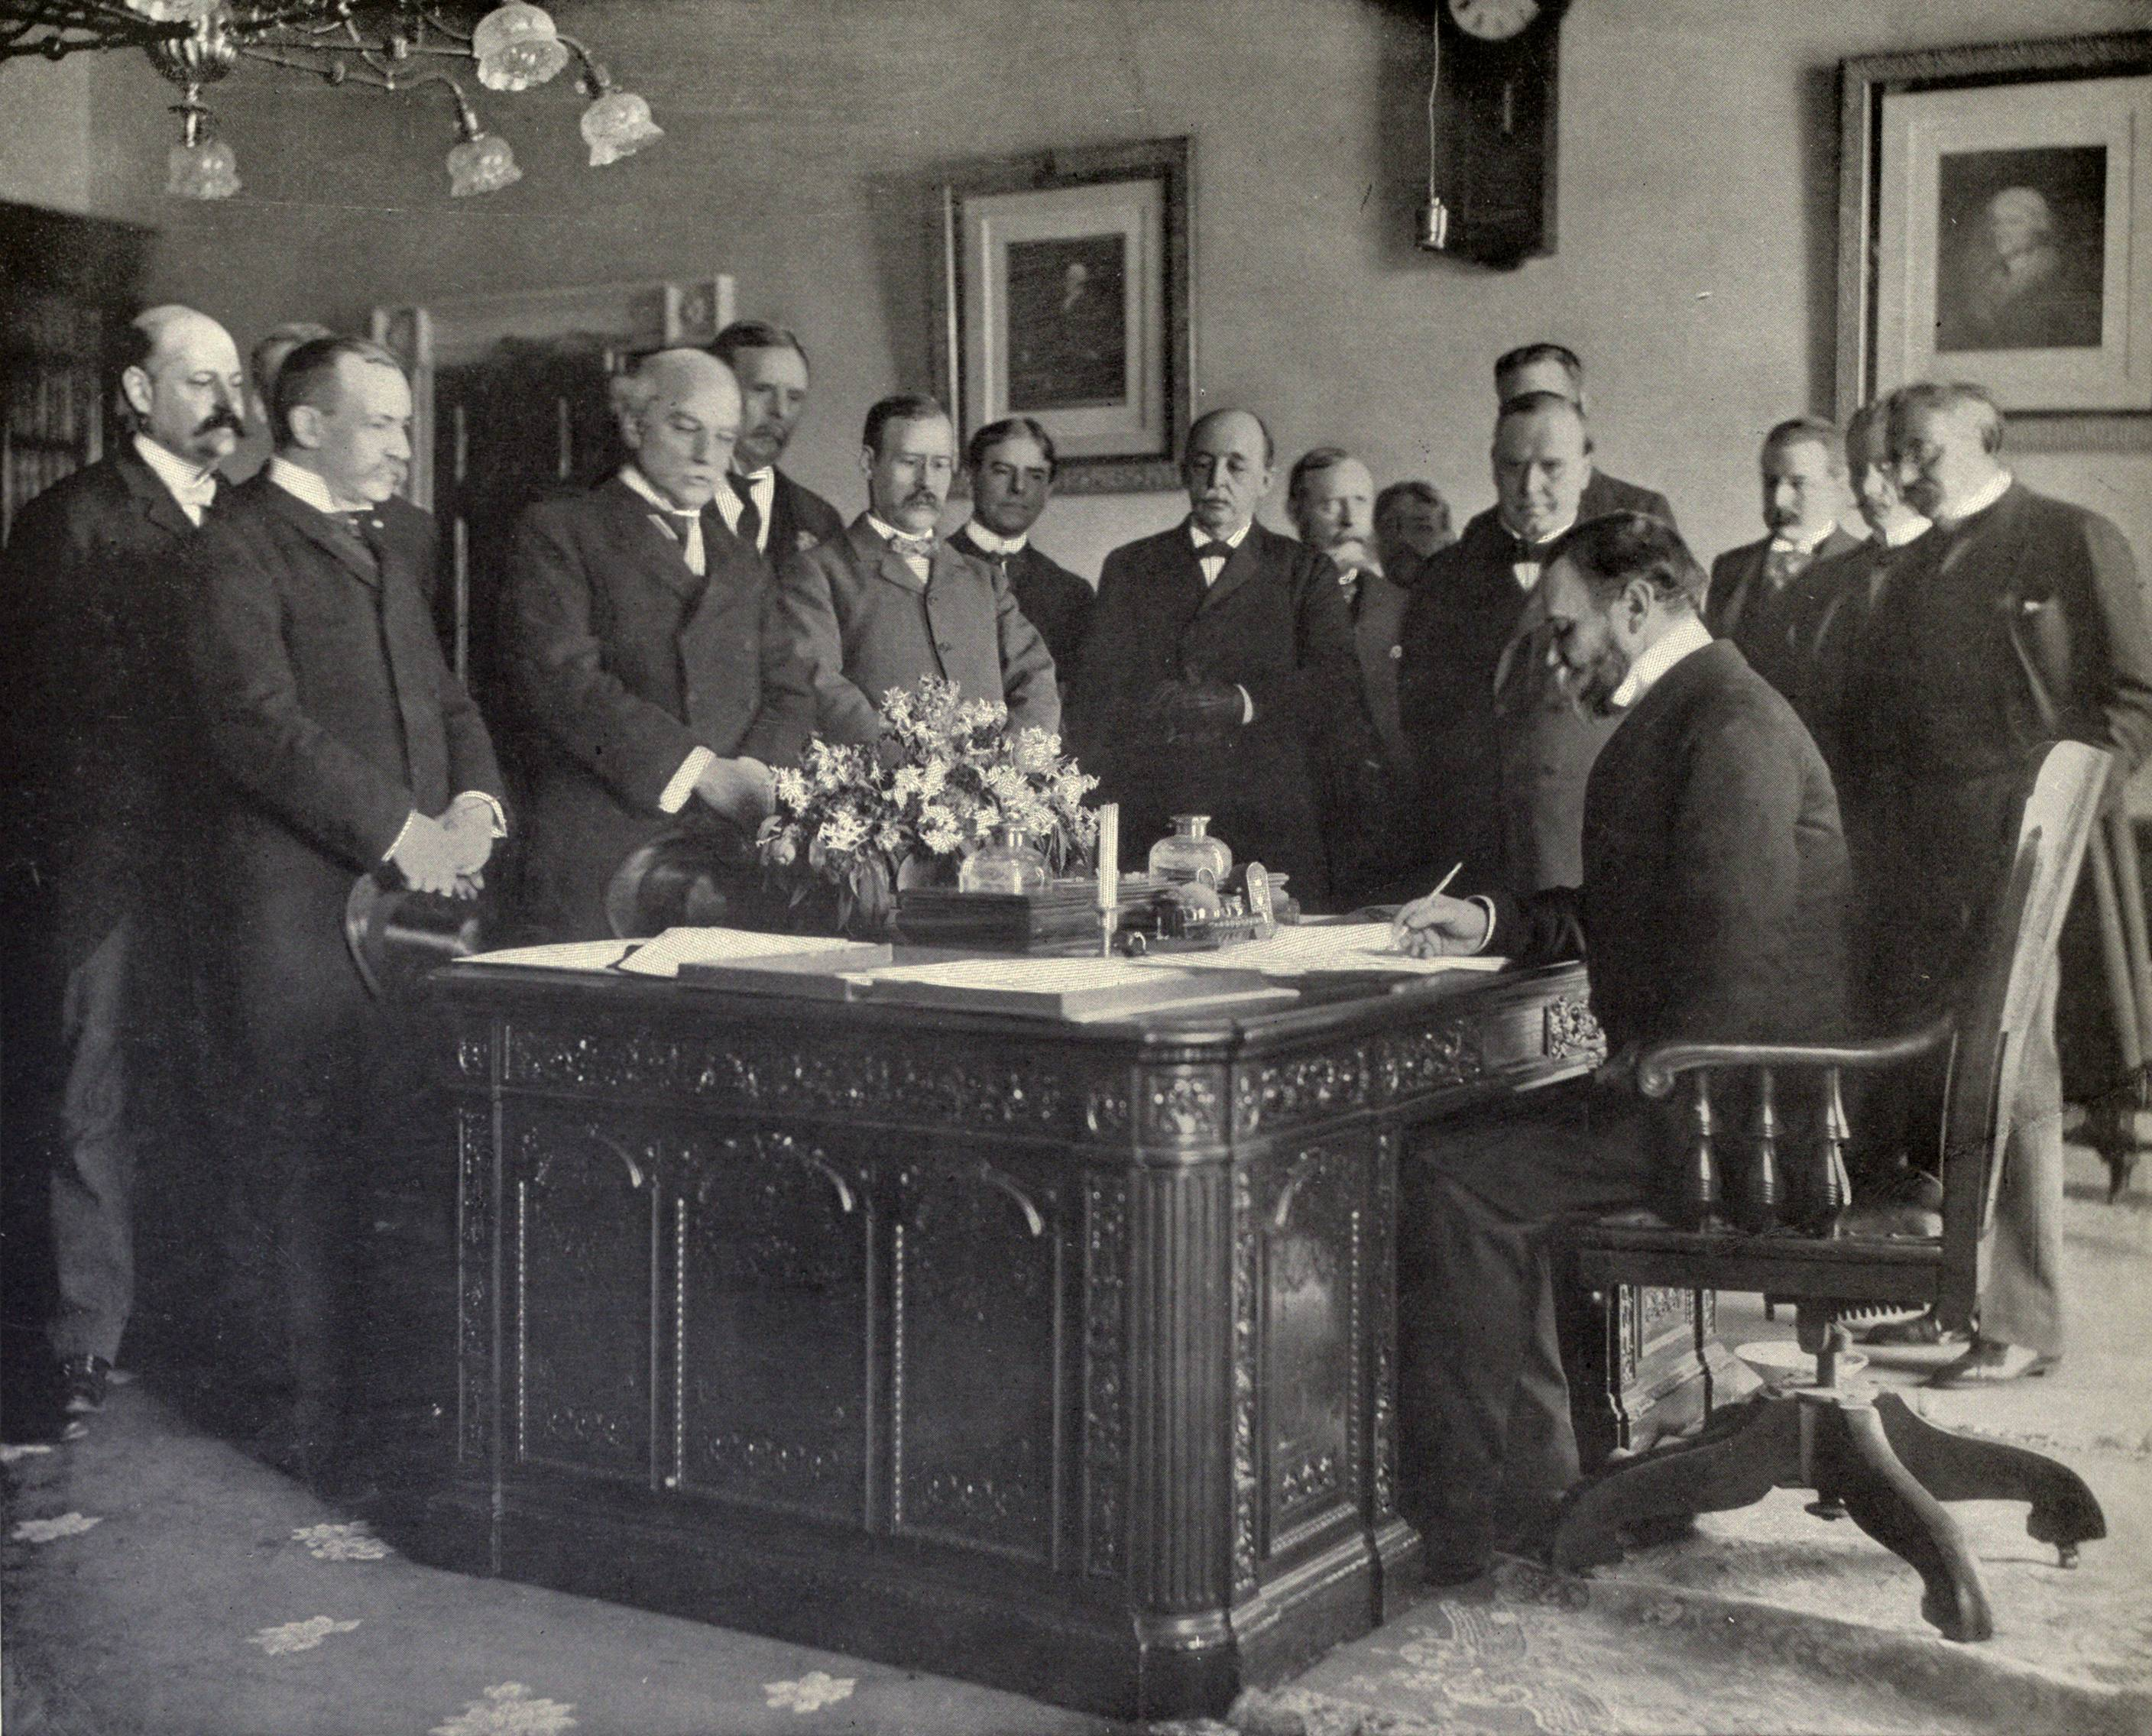 http://upload.wikimedia.org/wikipedia/commons/2/2b/John_Hay_signs_Treaty_of_Paris,_1899.JPG